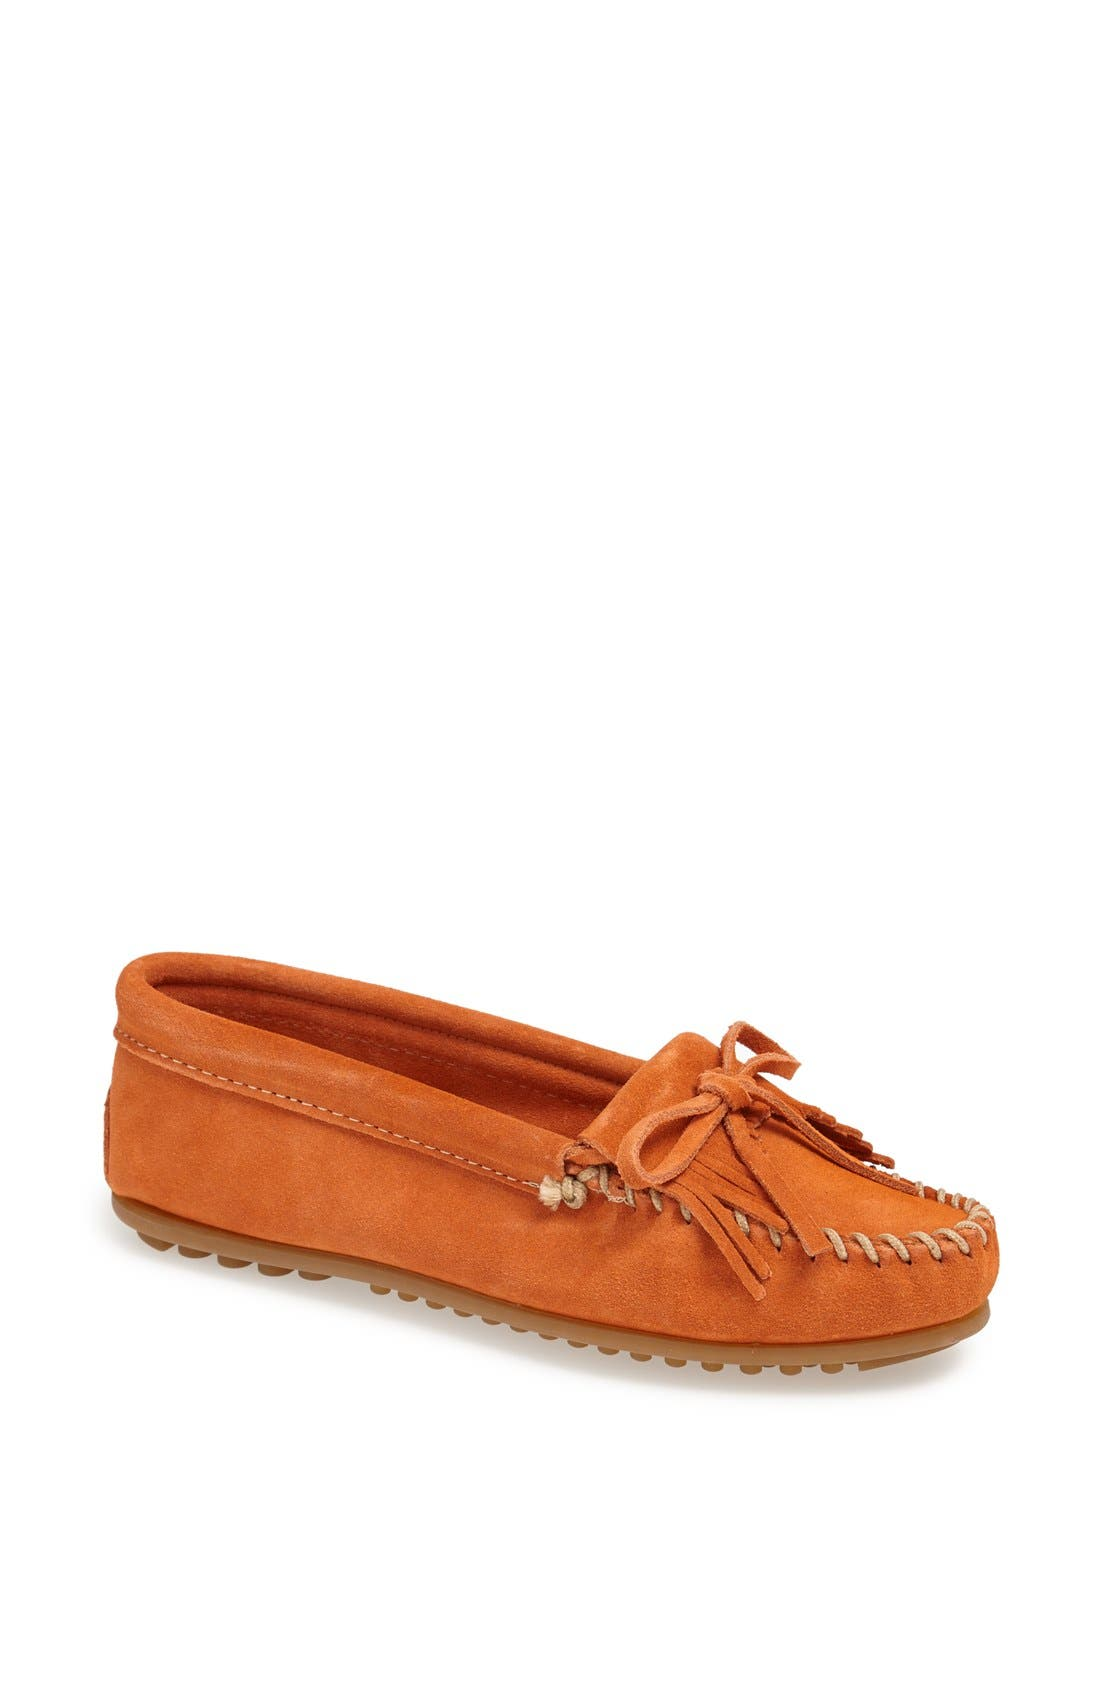 Alternate Image 1 Selected - Minnetonka 'Kilty' Suede Moccasin